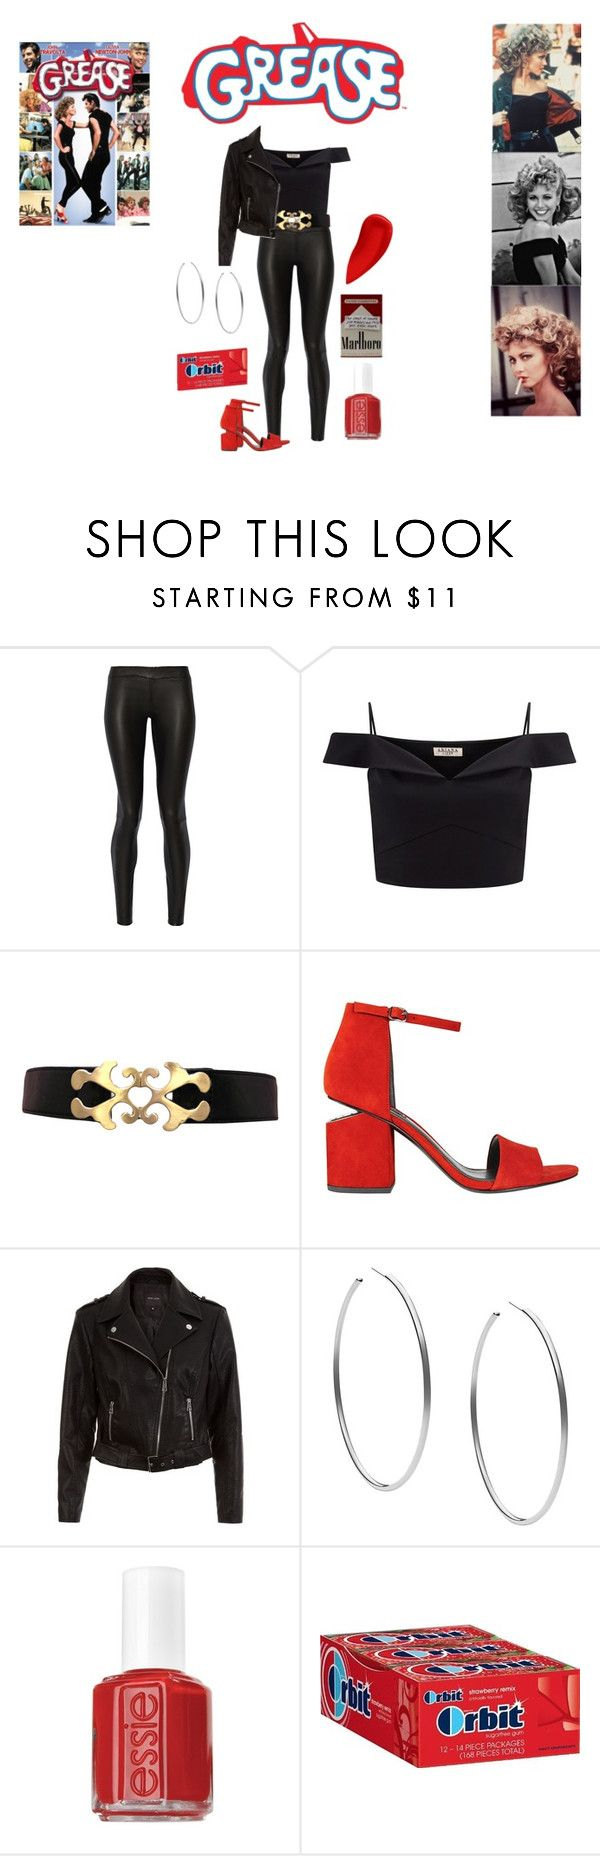 """""""Bad Sandy Grease Outfit"""" by geecat on Polyvore featuring The Row, Lipsy, Alexander Wang, New Look, Michael Kors, Essie and Lipstick Queen"""